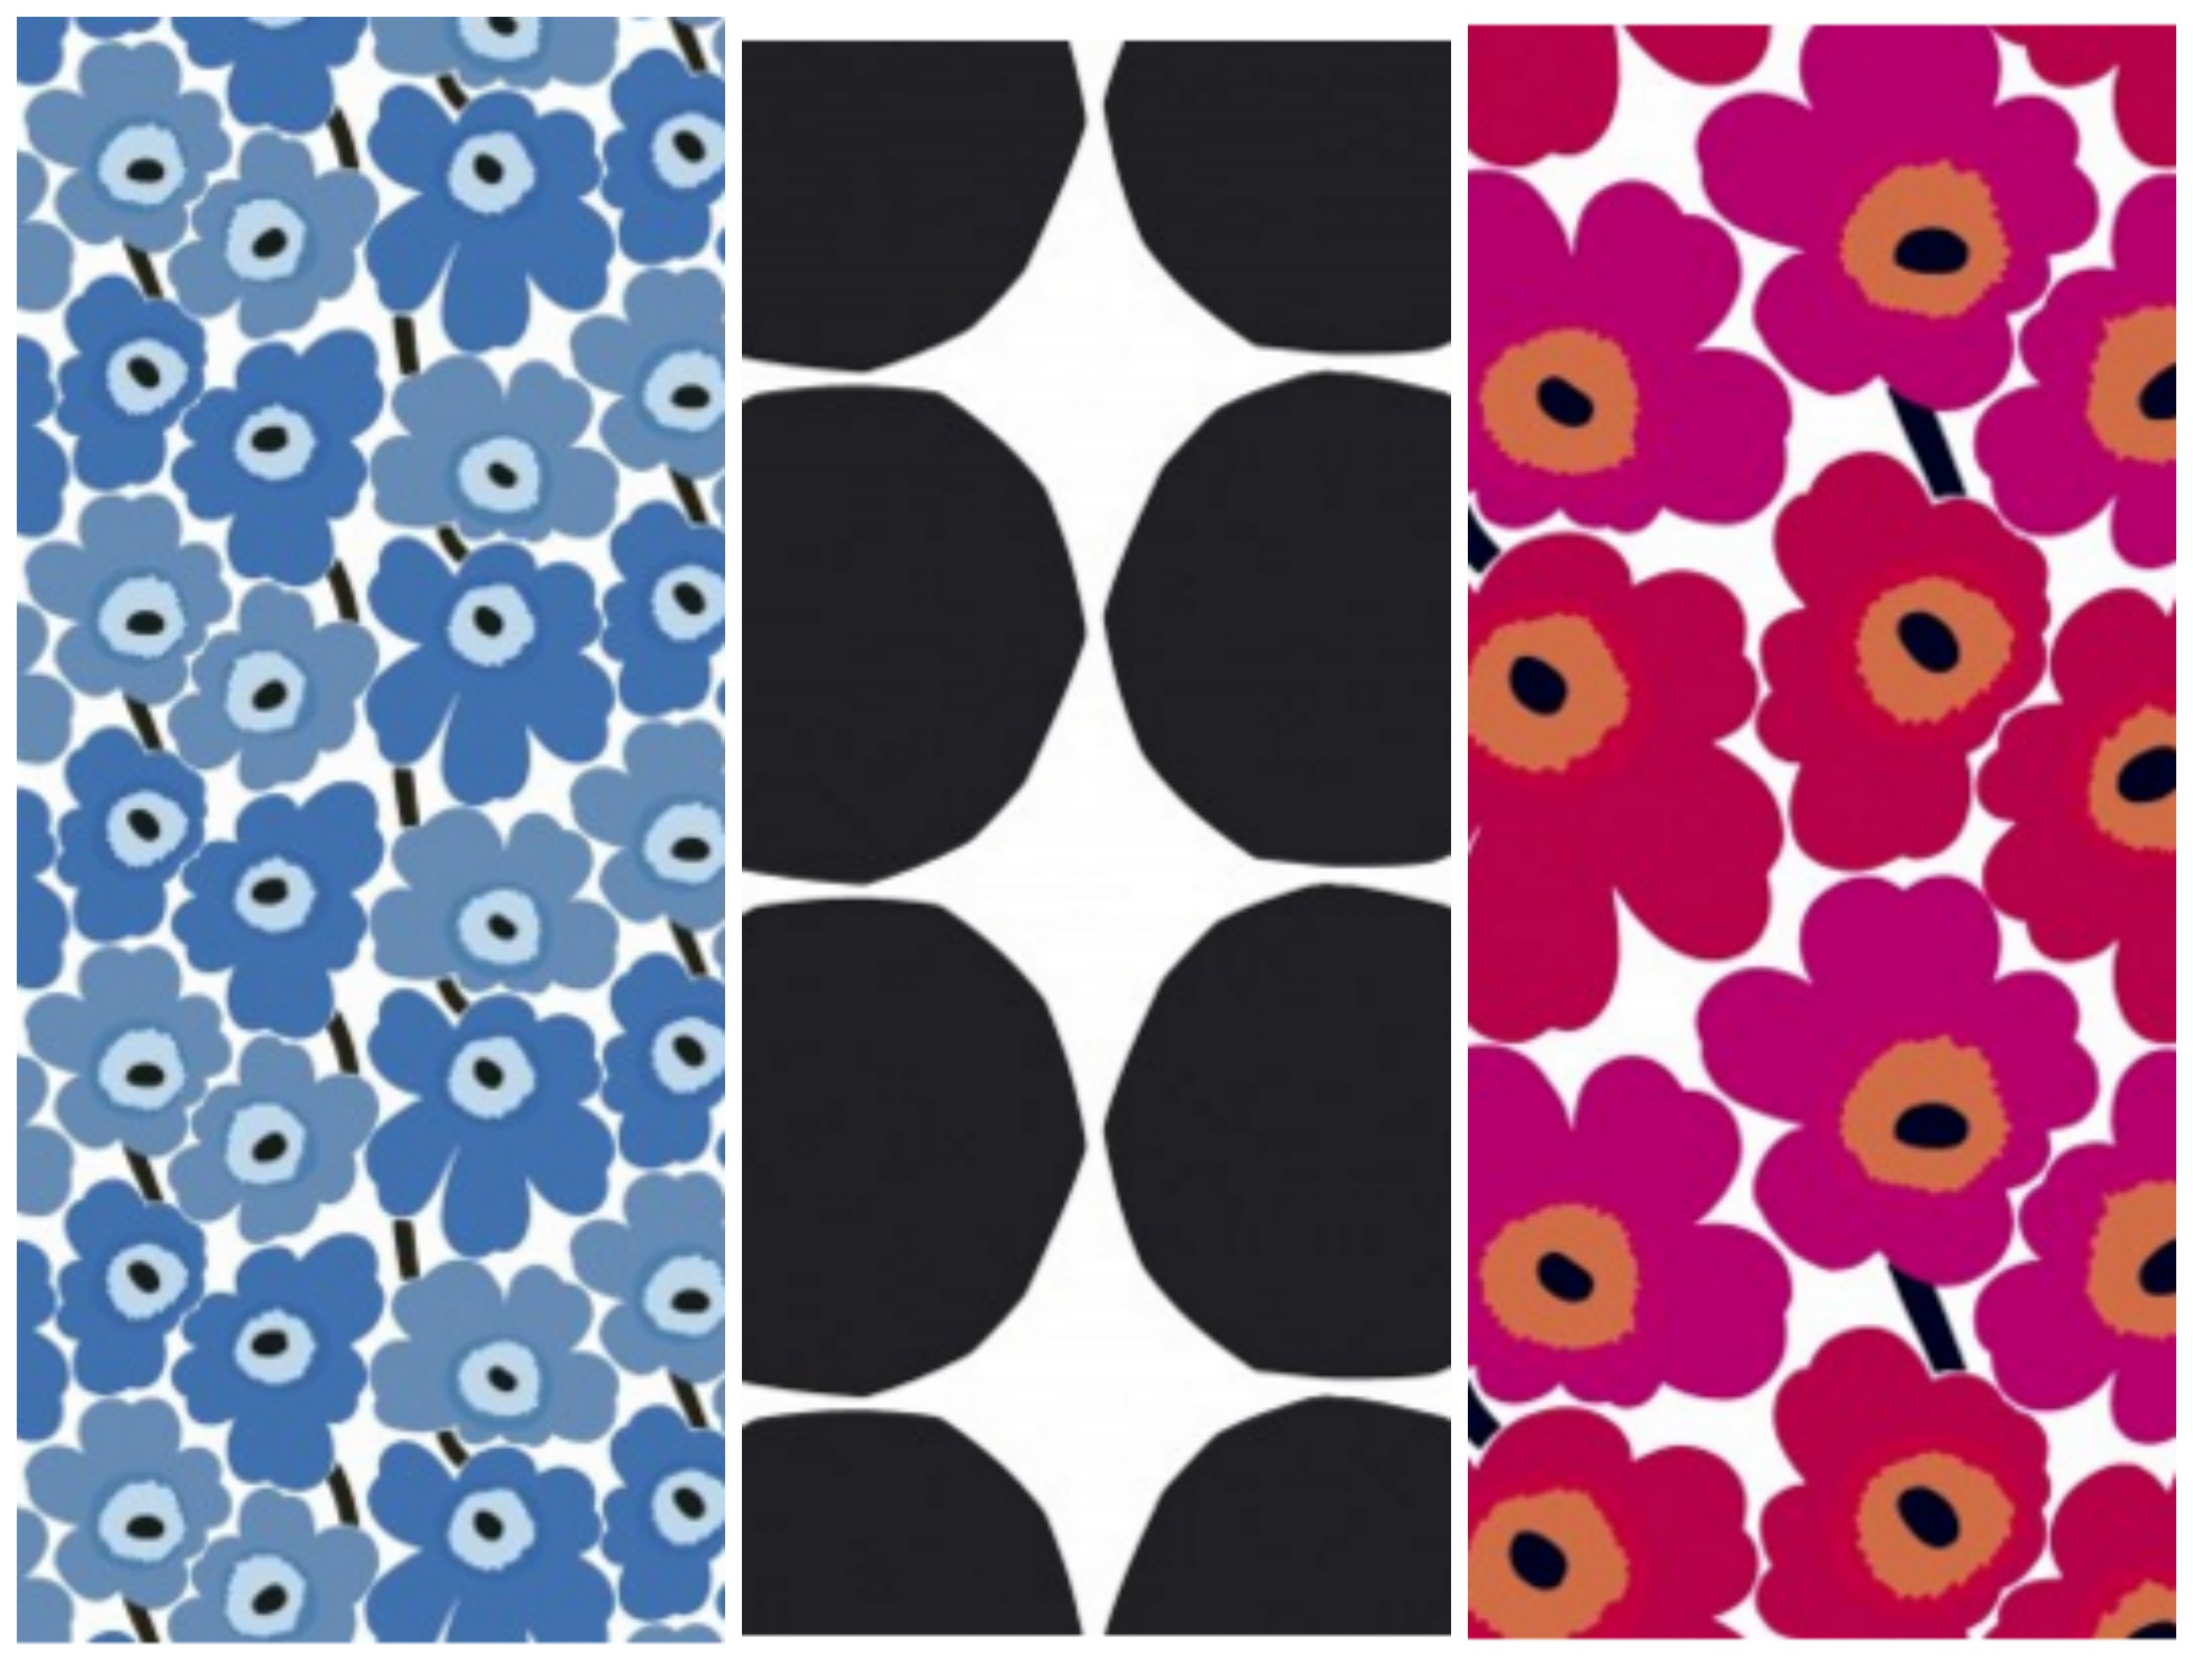 Inspiring Kitchen Marimekko launches at Target